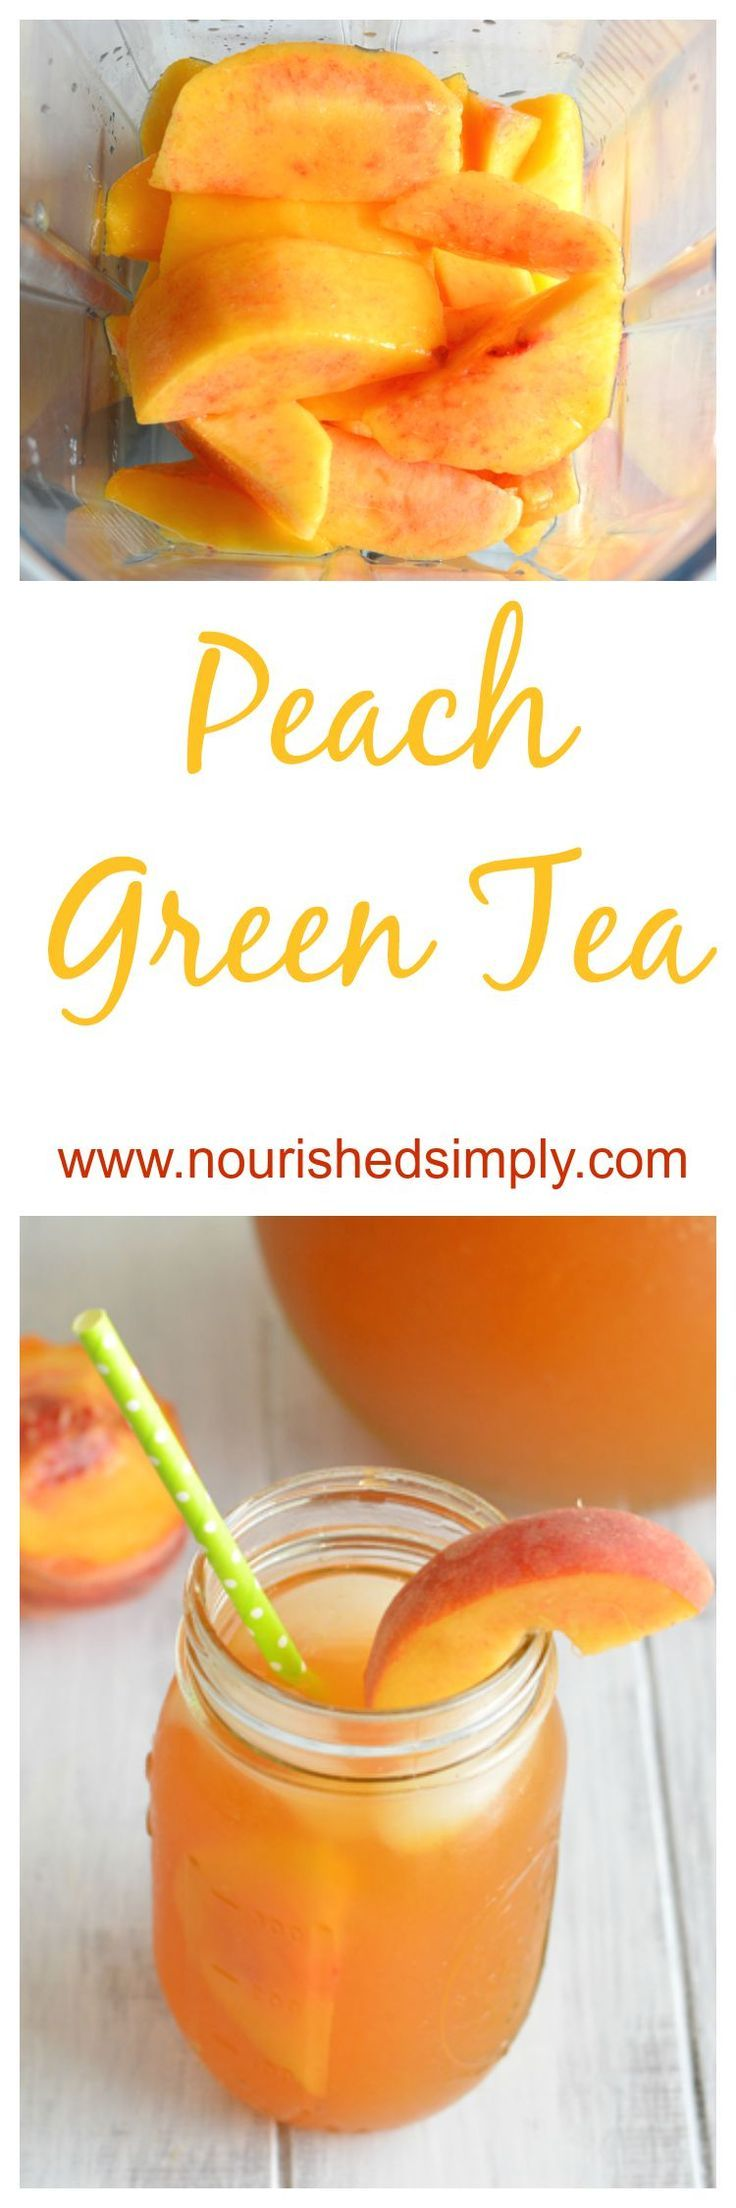 Dreaming of Summer and sipping this refreshing peach green tea made with fresh peaches.  This is a perfect summer drink recipe.